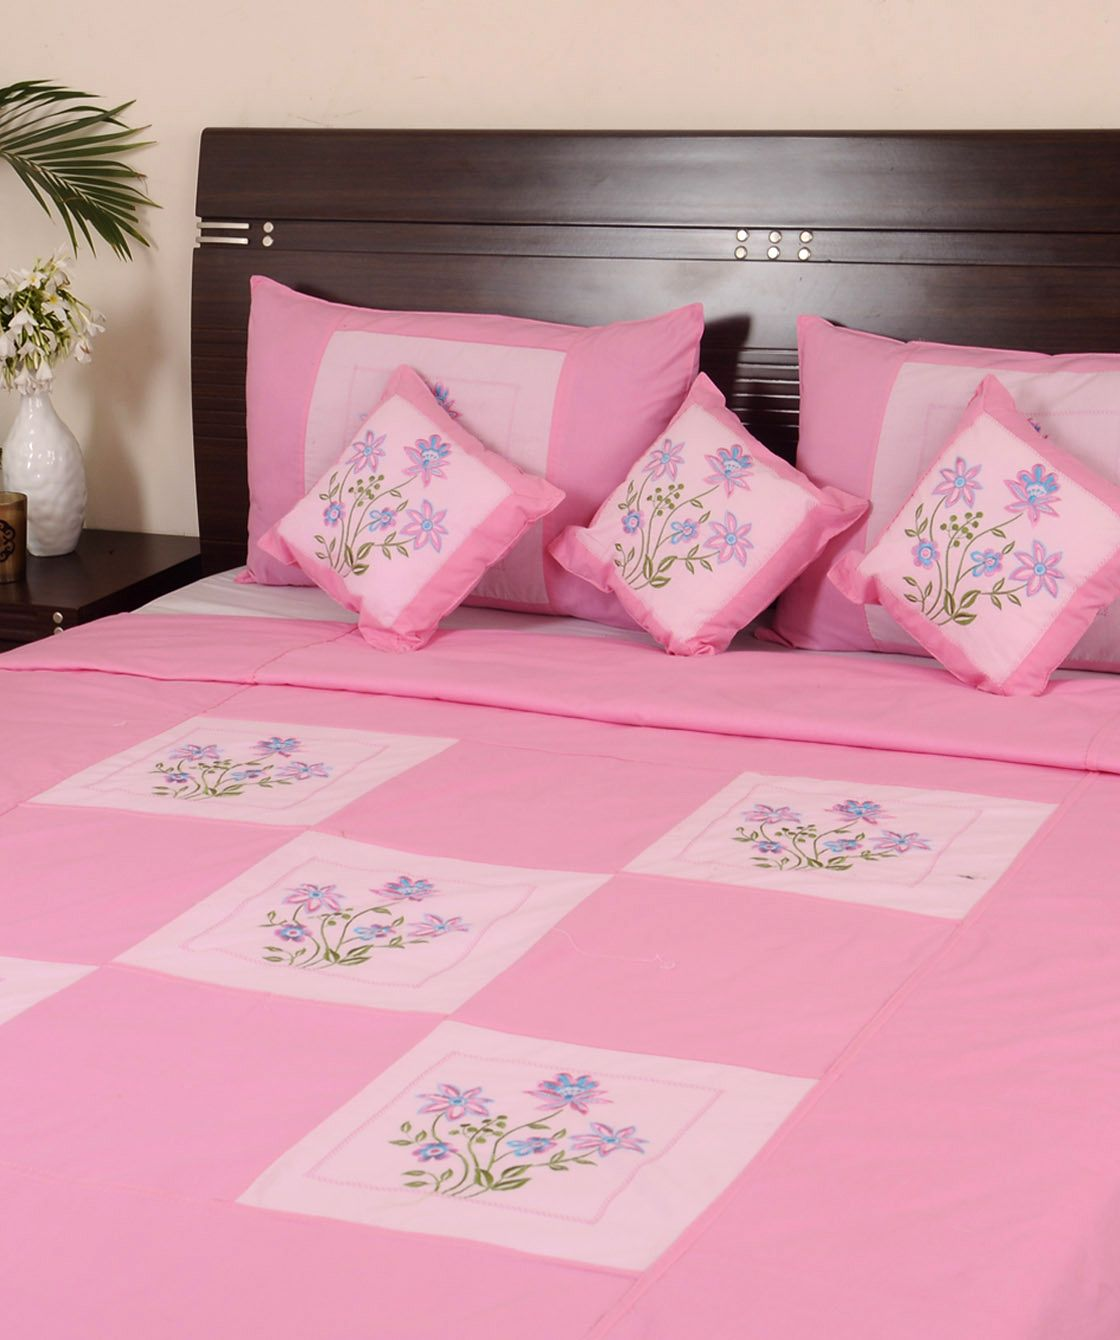 Ribbon embroidery bedspread designs - Hand Embroidery On Bedsheets Google Search